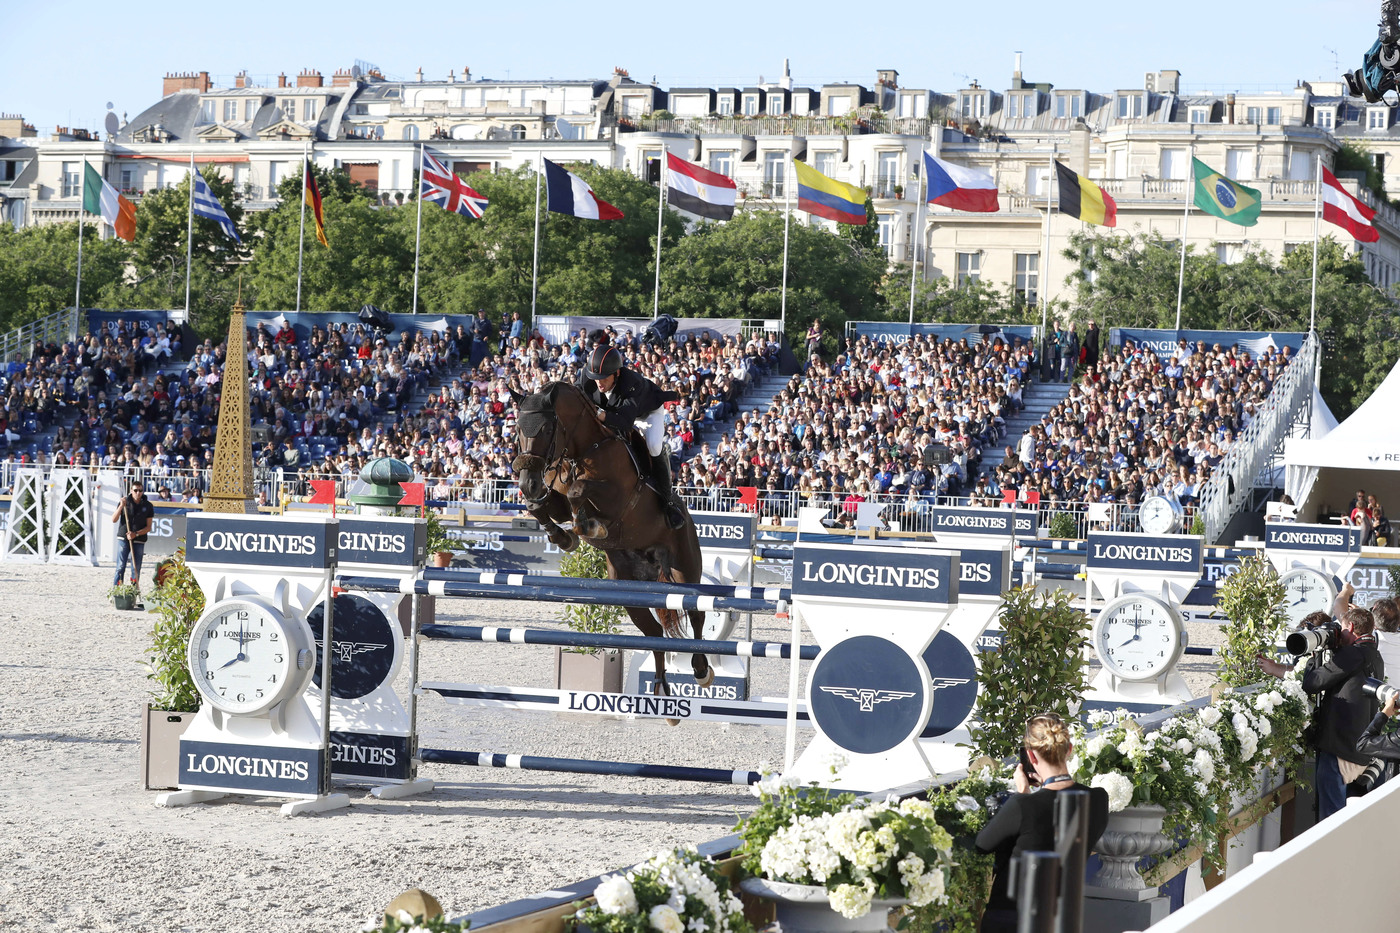 Longines Show Jumping Event: The Longines Paris Eiffel Jumping returned to its iconic location in the very heart of the French capital 1